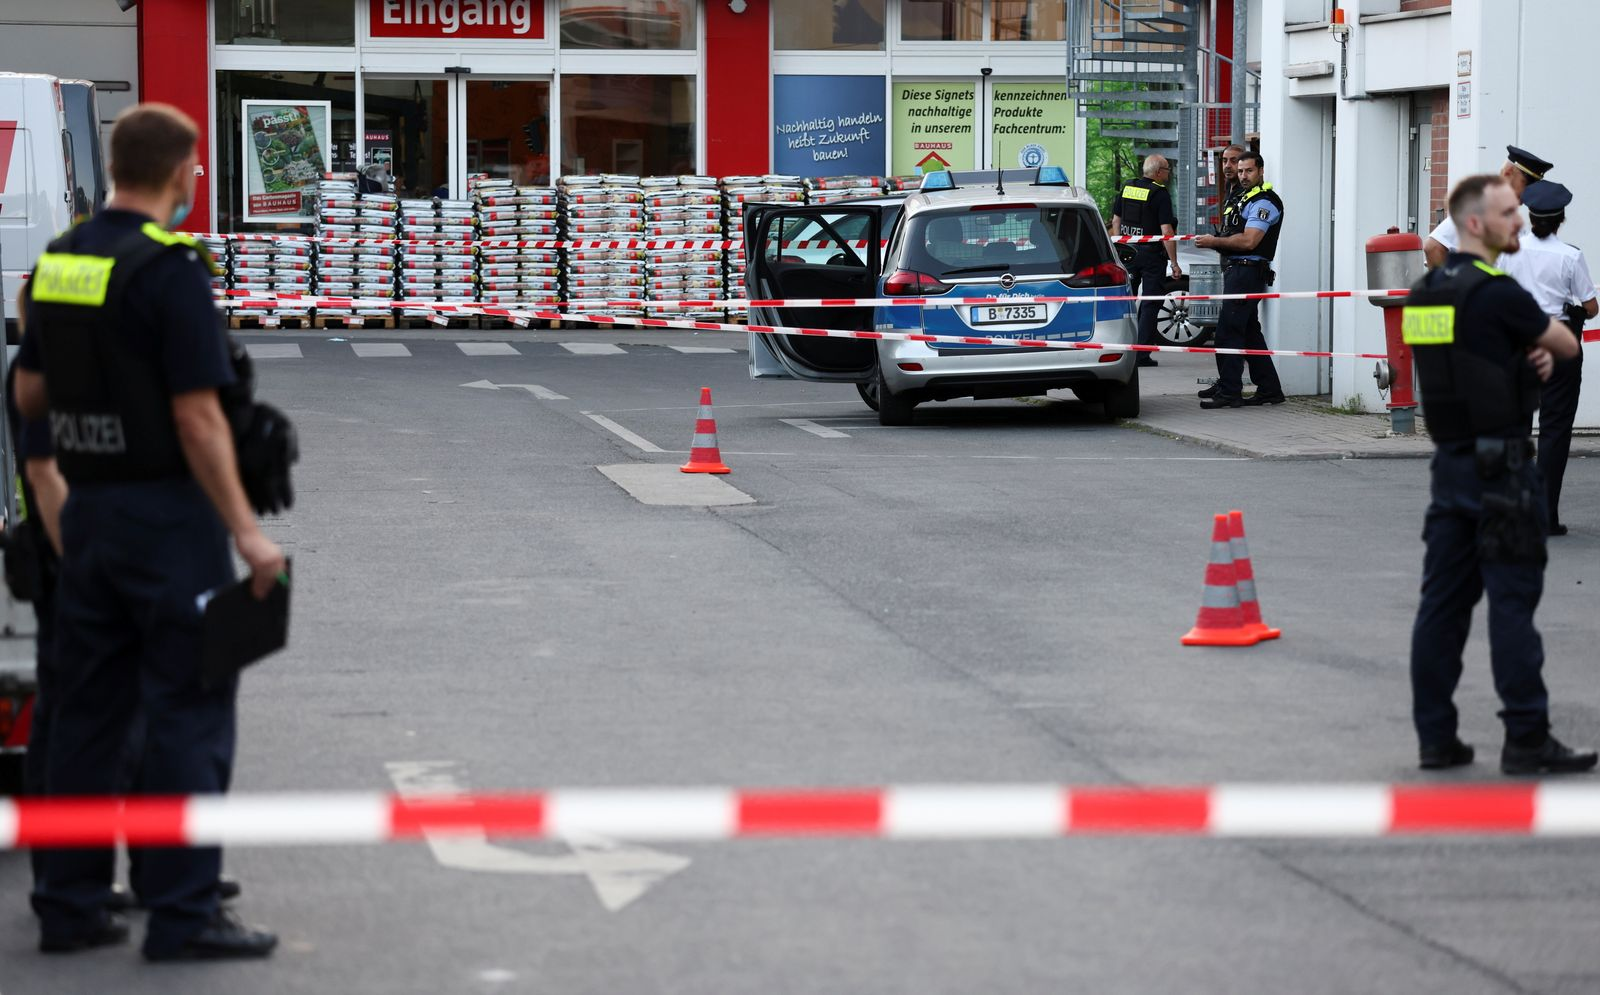 Police officers secure parking space after shots fired outside Berlin store